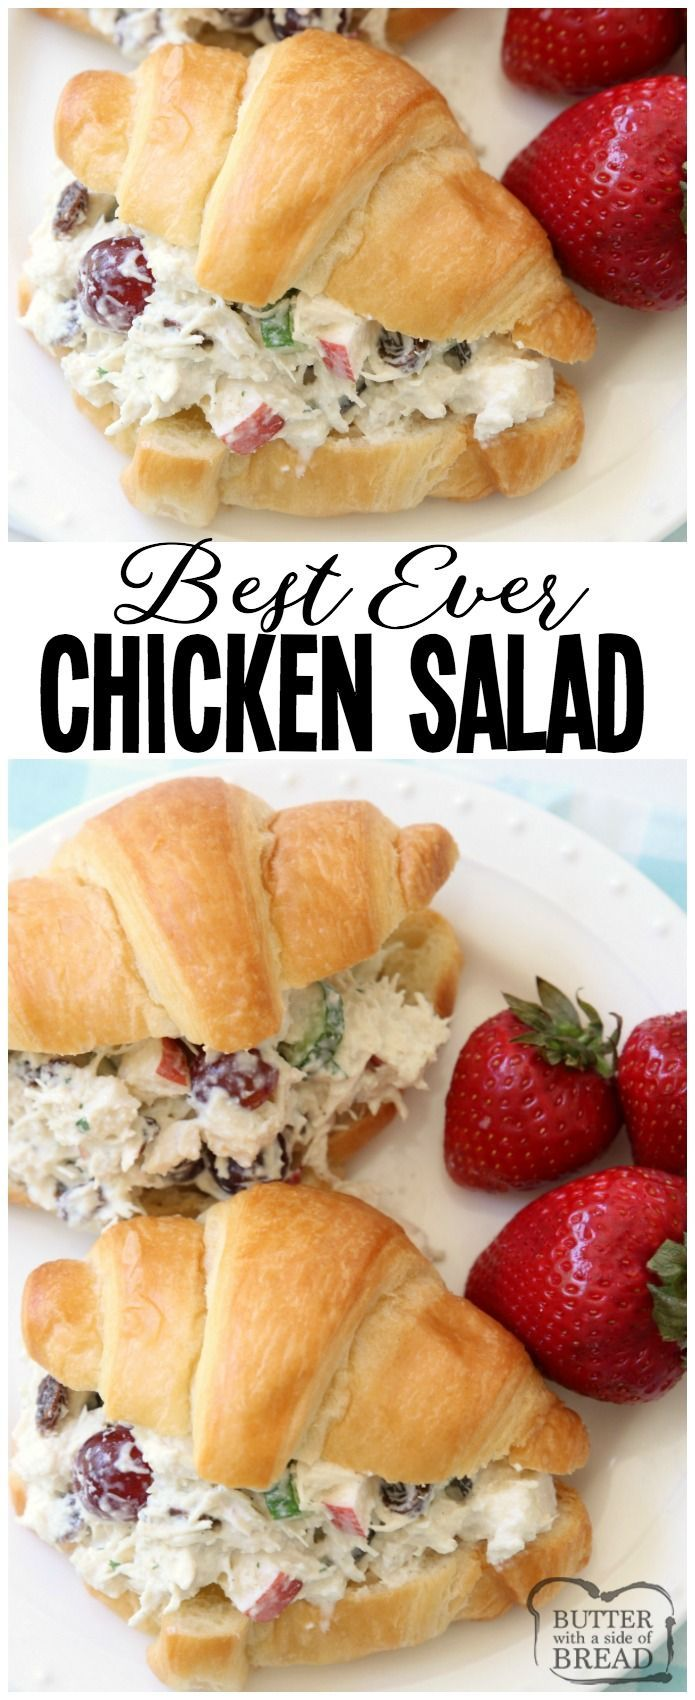 Easy 5-Minute Chicken Salad recipe that's the BEST I've ever tasted! The simple images